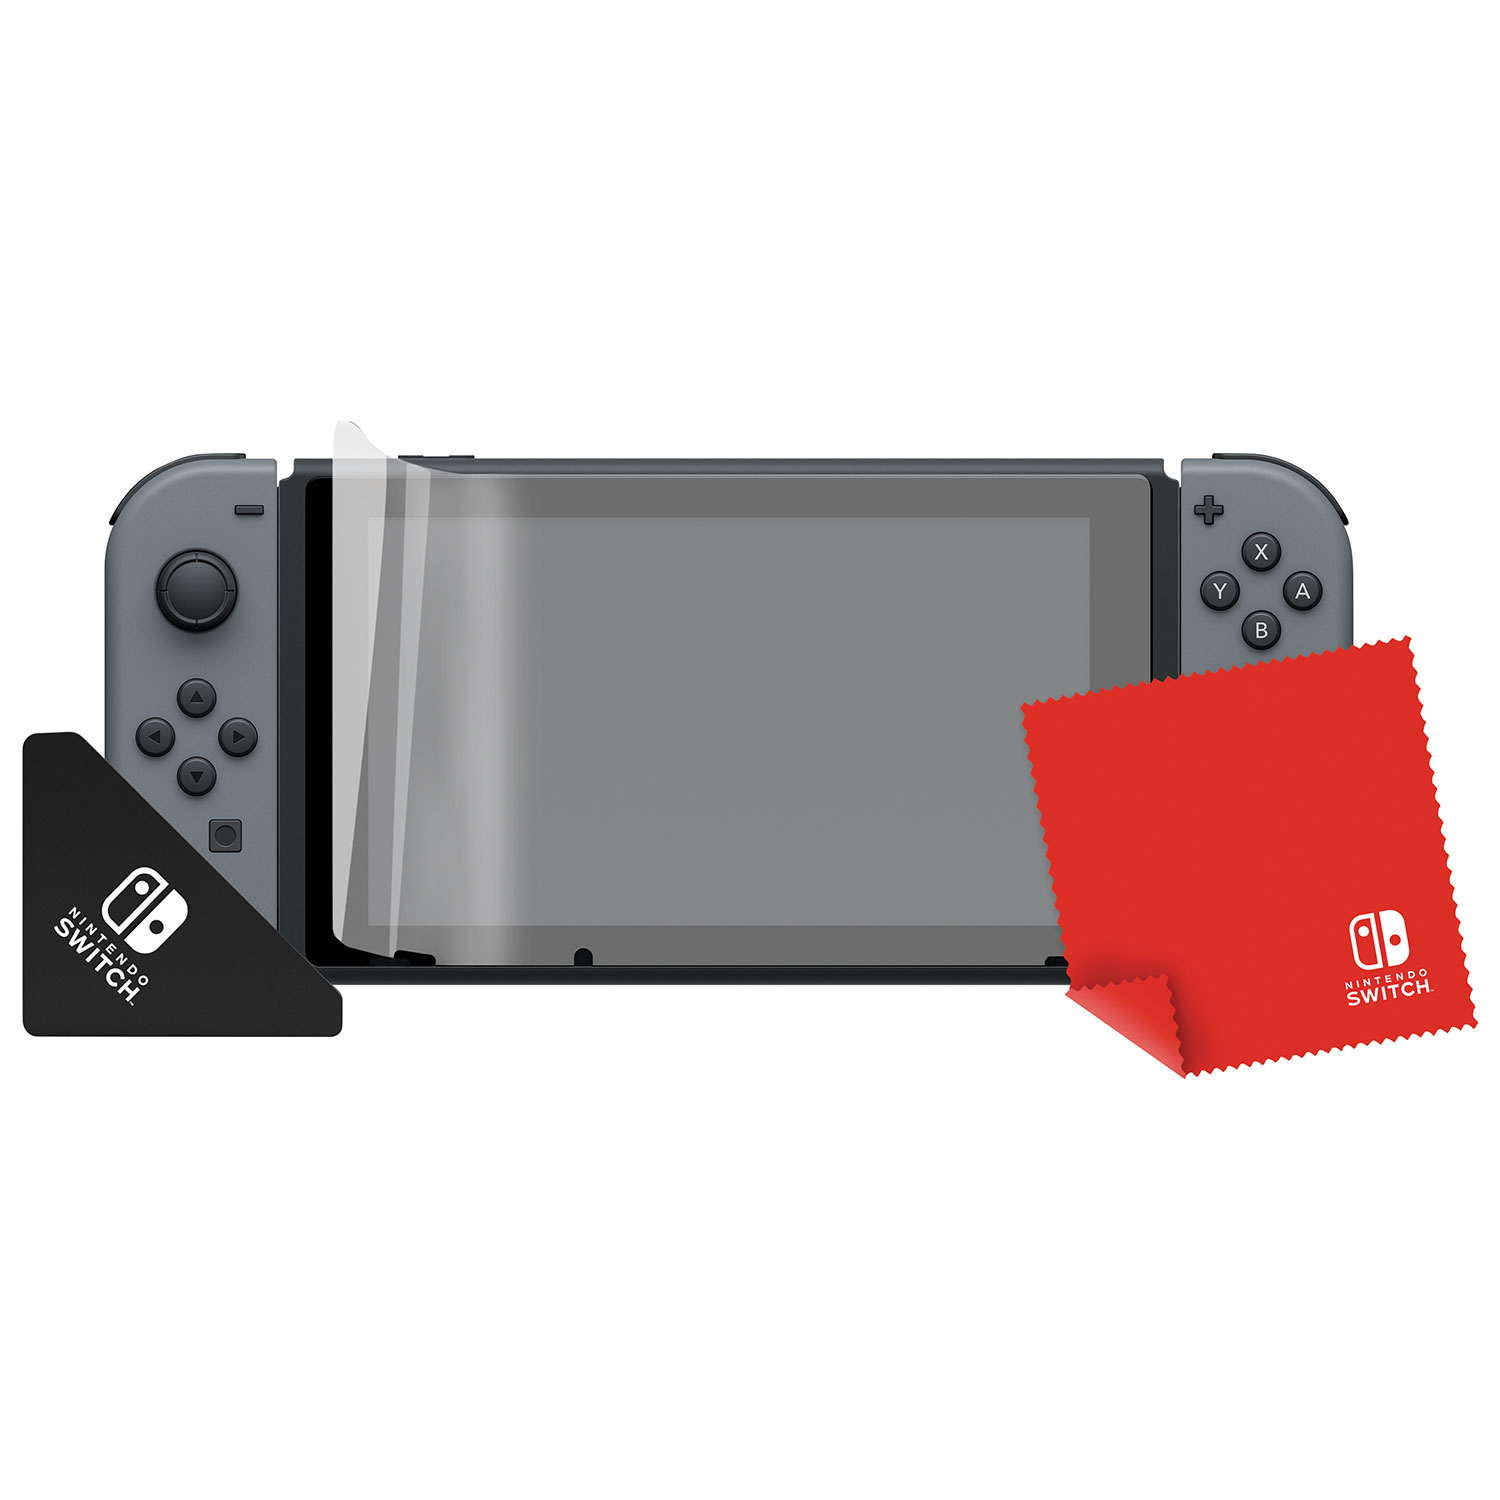 Pdp Nintendo Switch Official Screen Protection Kit Viewsonic Lcd Vp2290b Assembly Procedure Skins Faceplates Cases Best Buy Canada